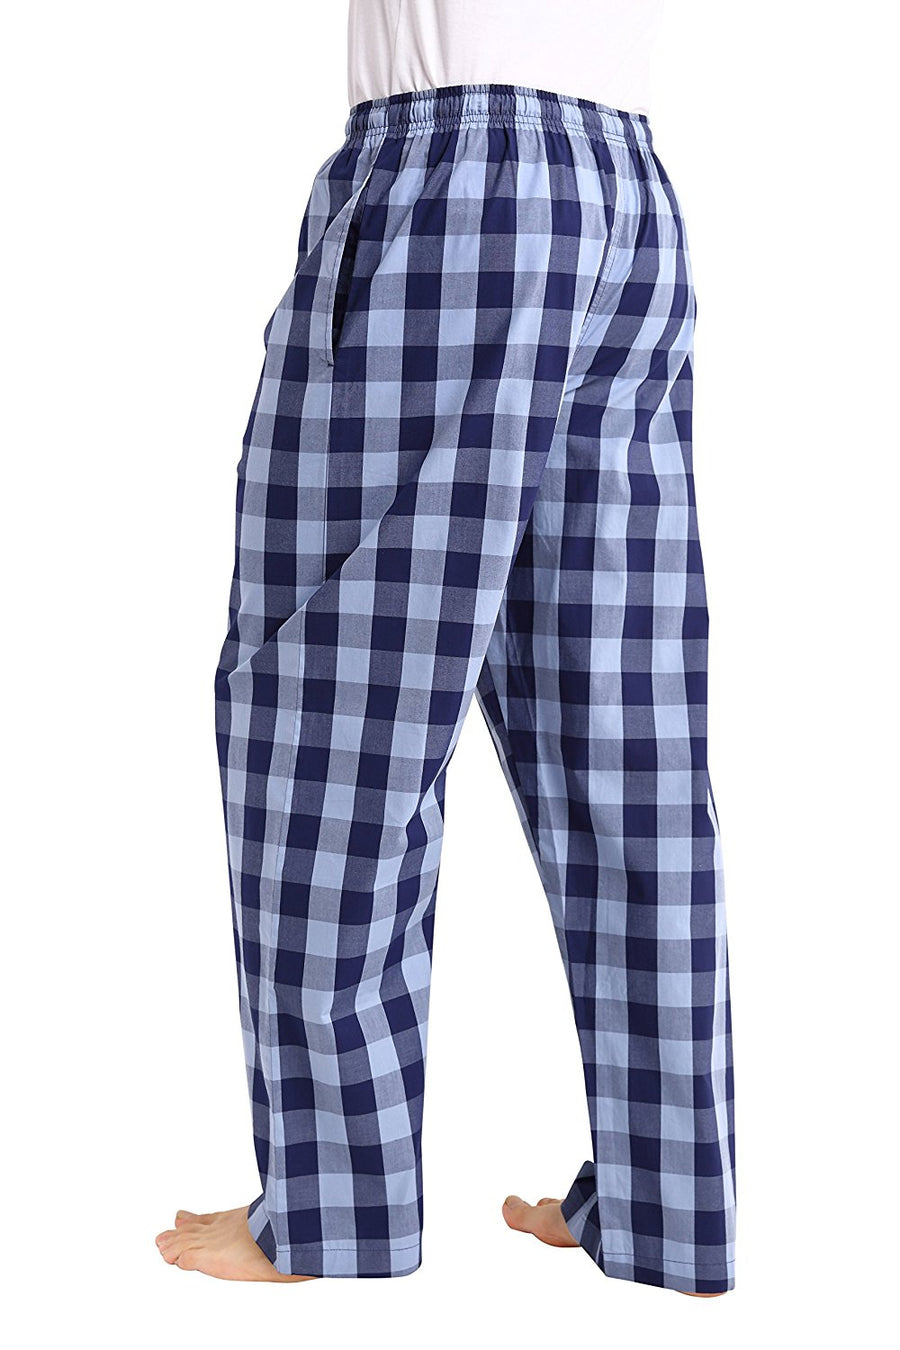 CYZ Men's 100% Cotton Poplin Pajama Lounge Sleep Pant